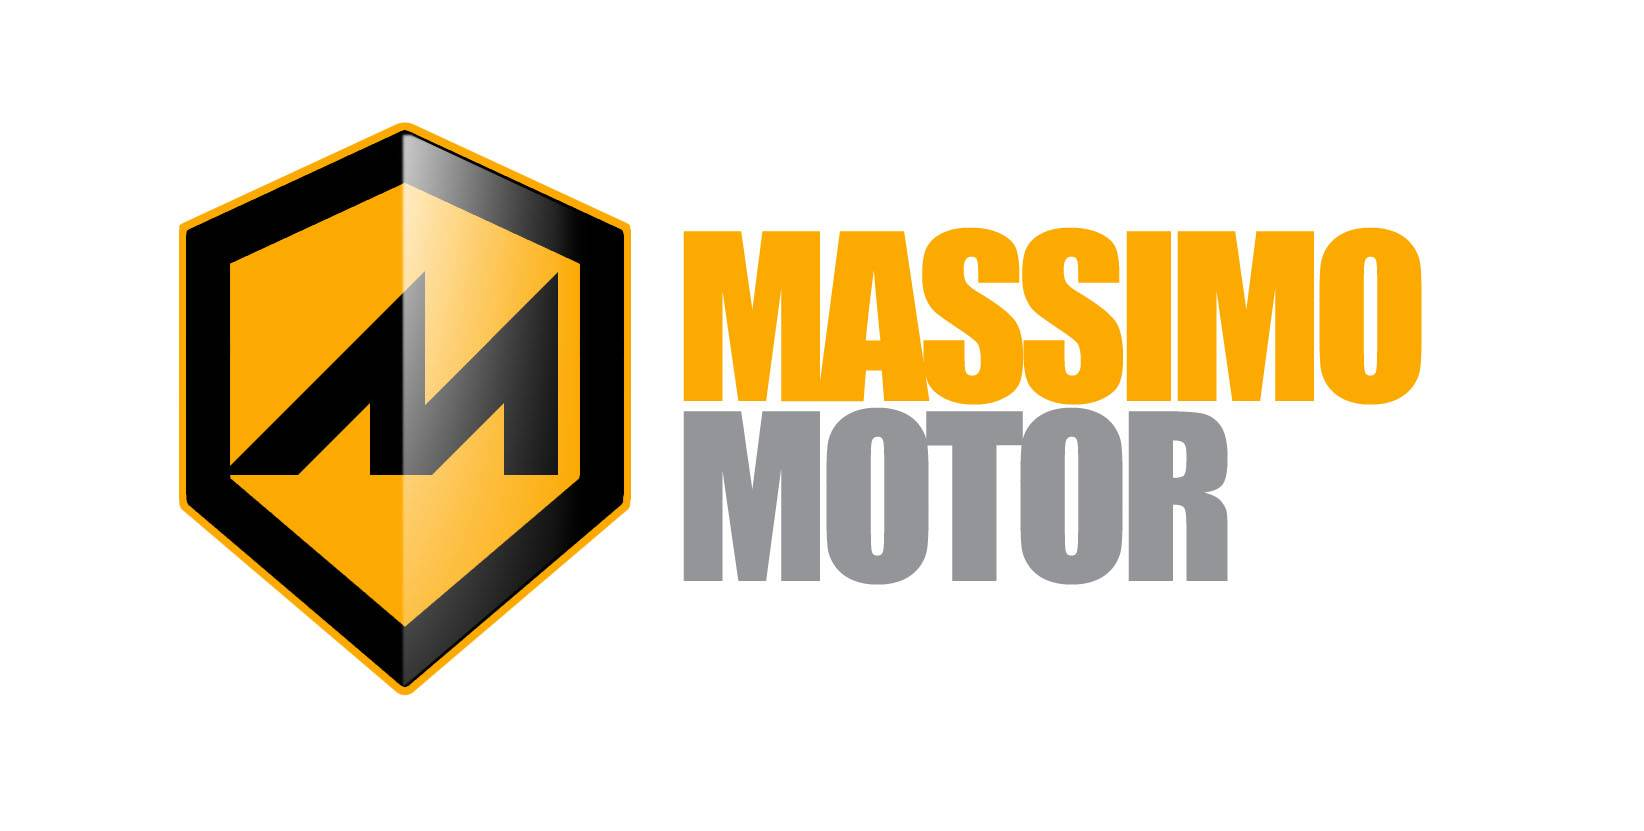 Massimo 10.99% for 36 Months